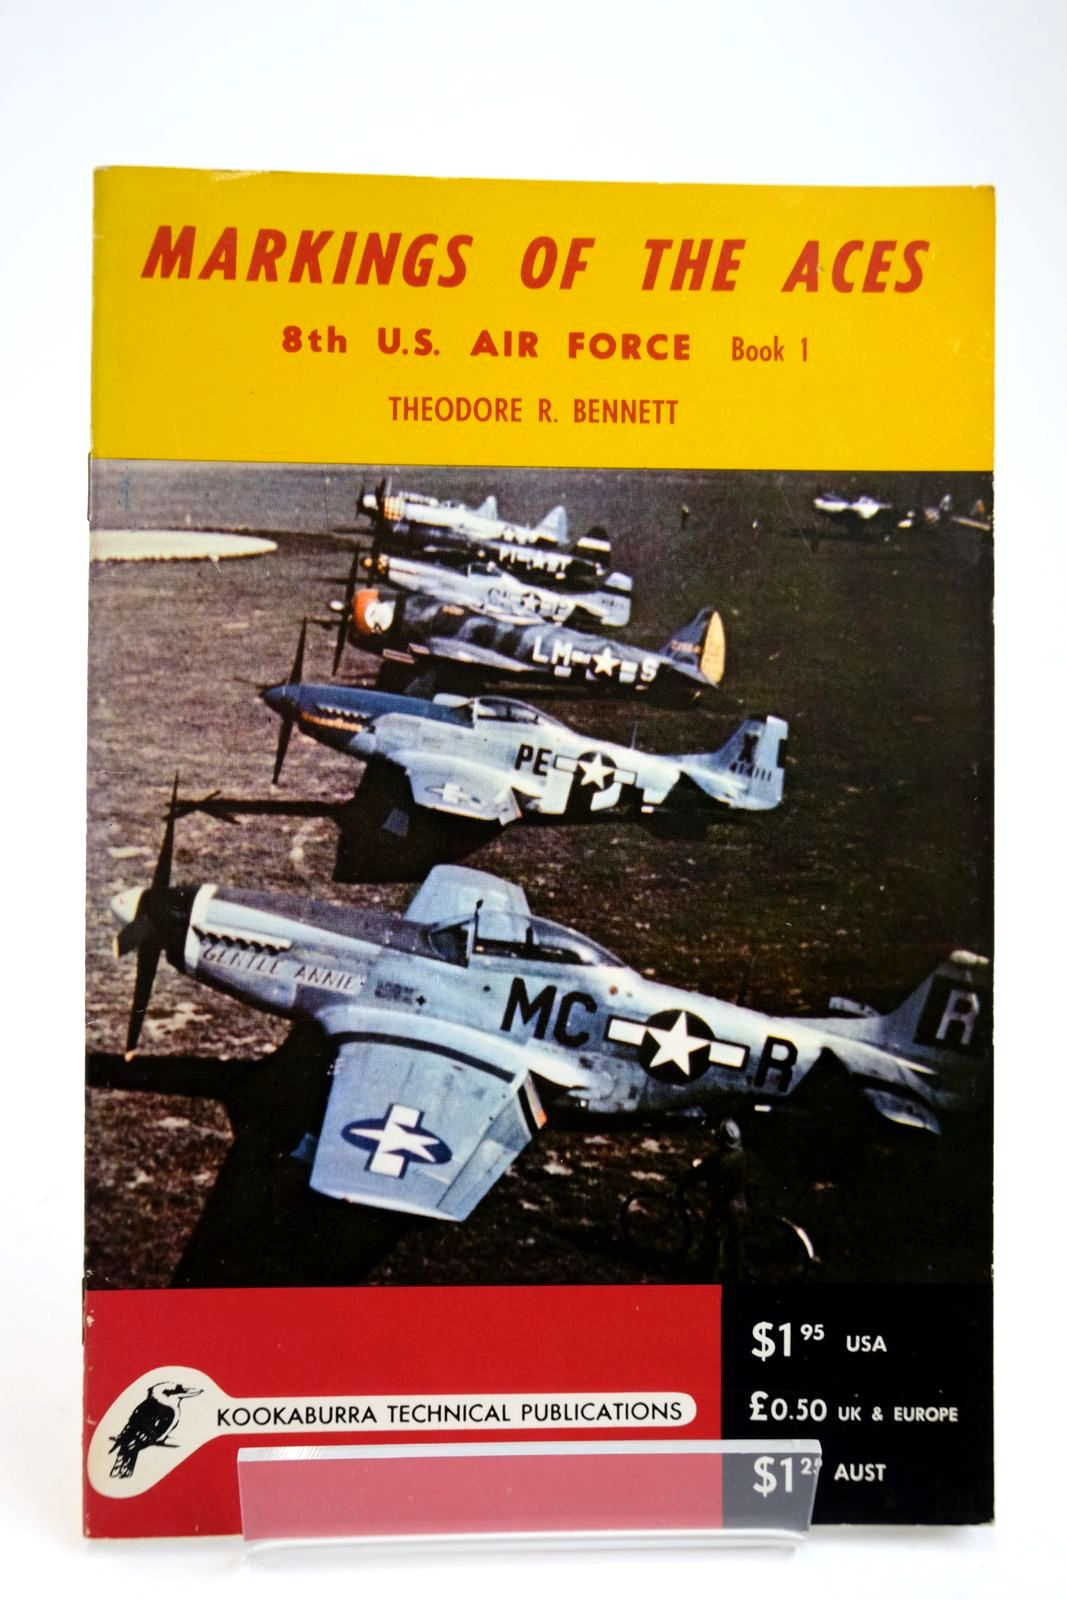 Photo of MARKINGS OF THE ACES 8TH U.S. AIR FORCE. BOOK 1 written by Bennett, Theodore R. published by Kookaburra Technical Publications (STOCK CODE: 2133814)  for sale by Stella & Rose's Books